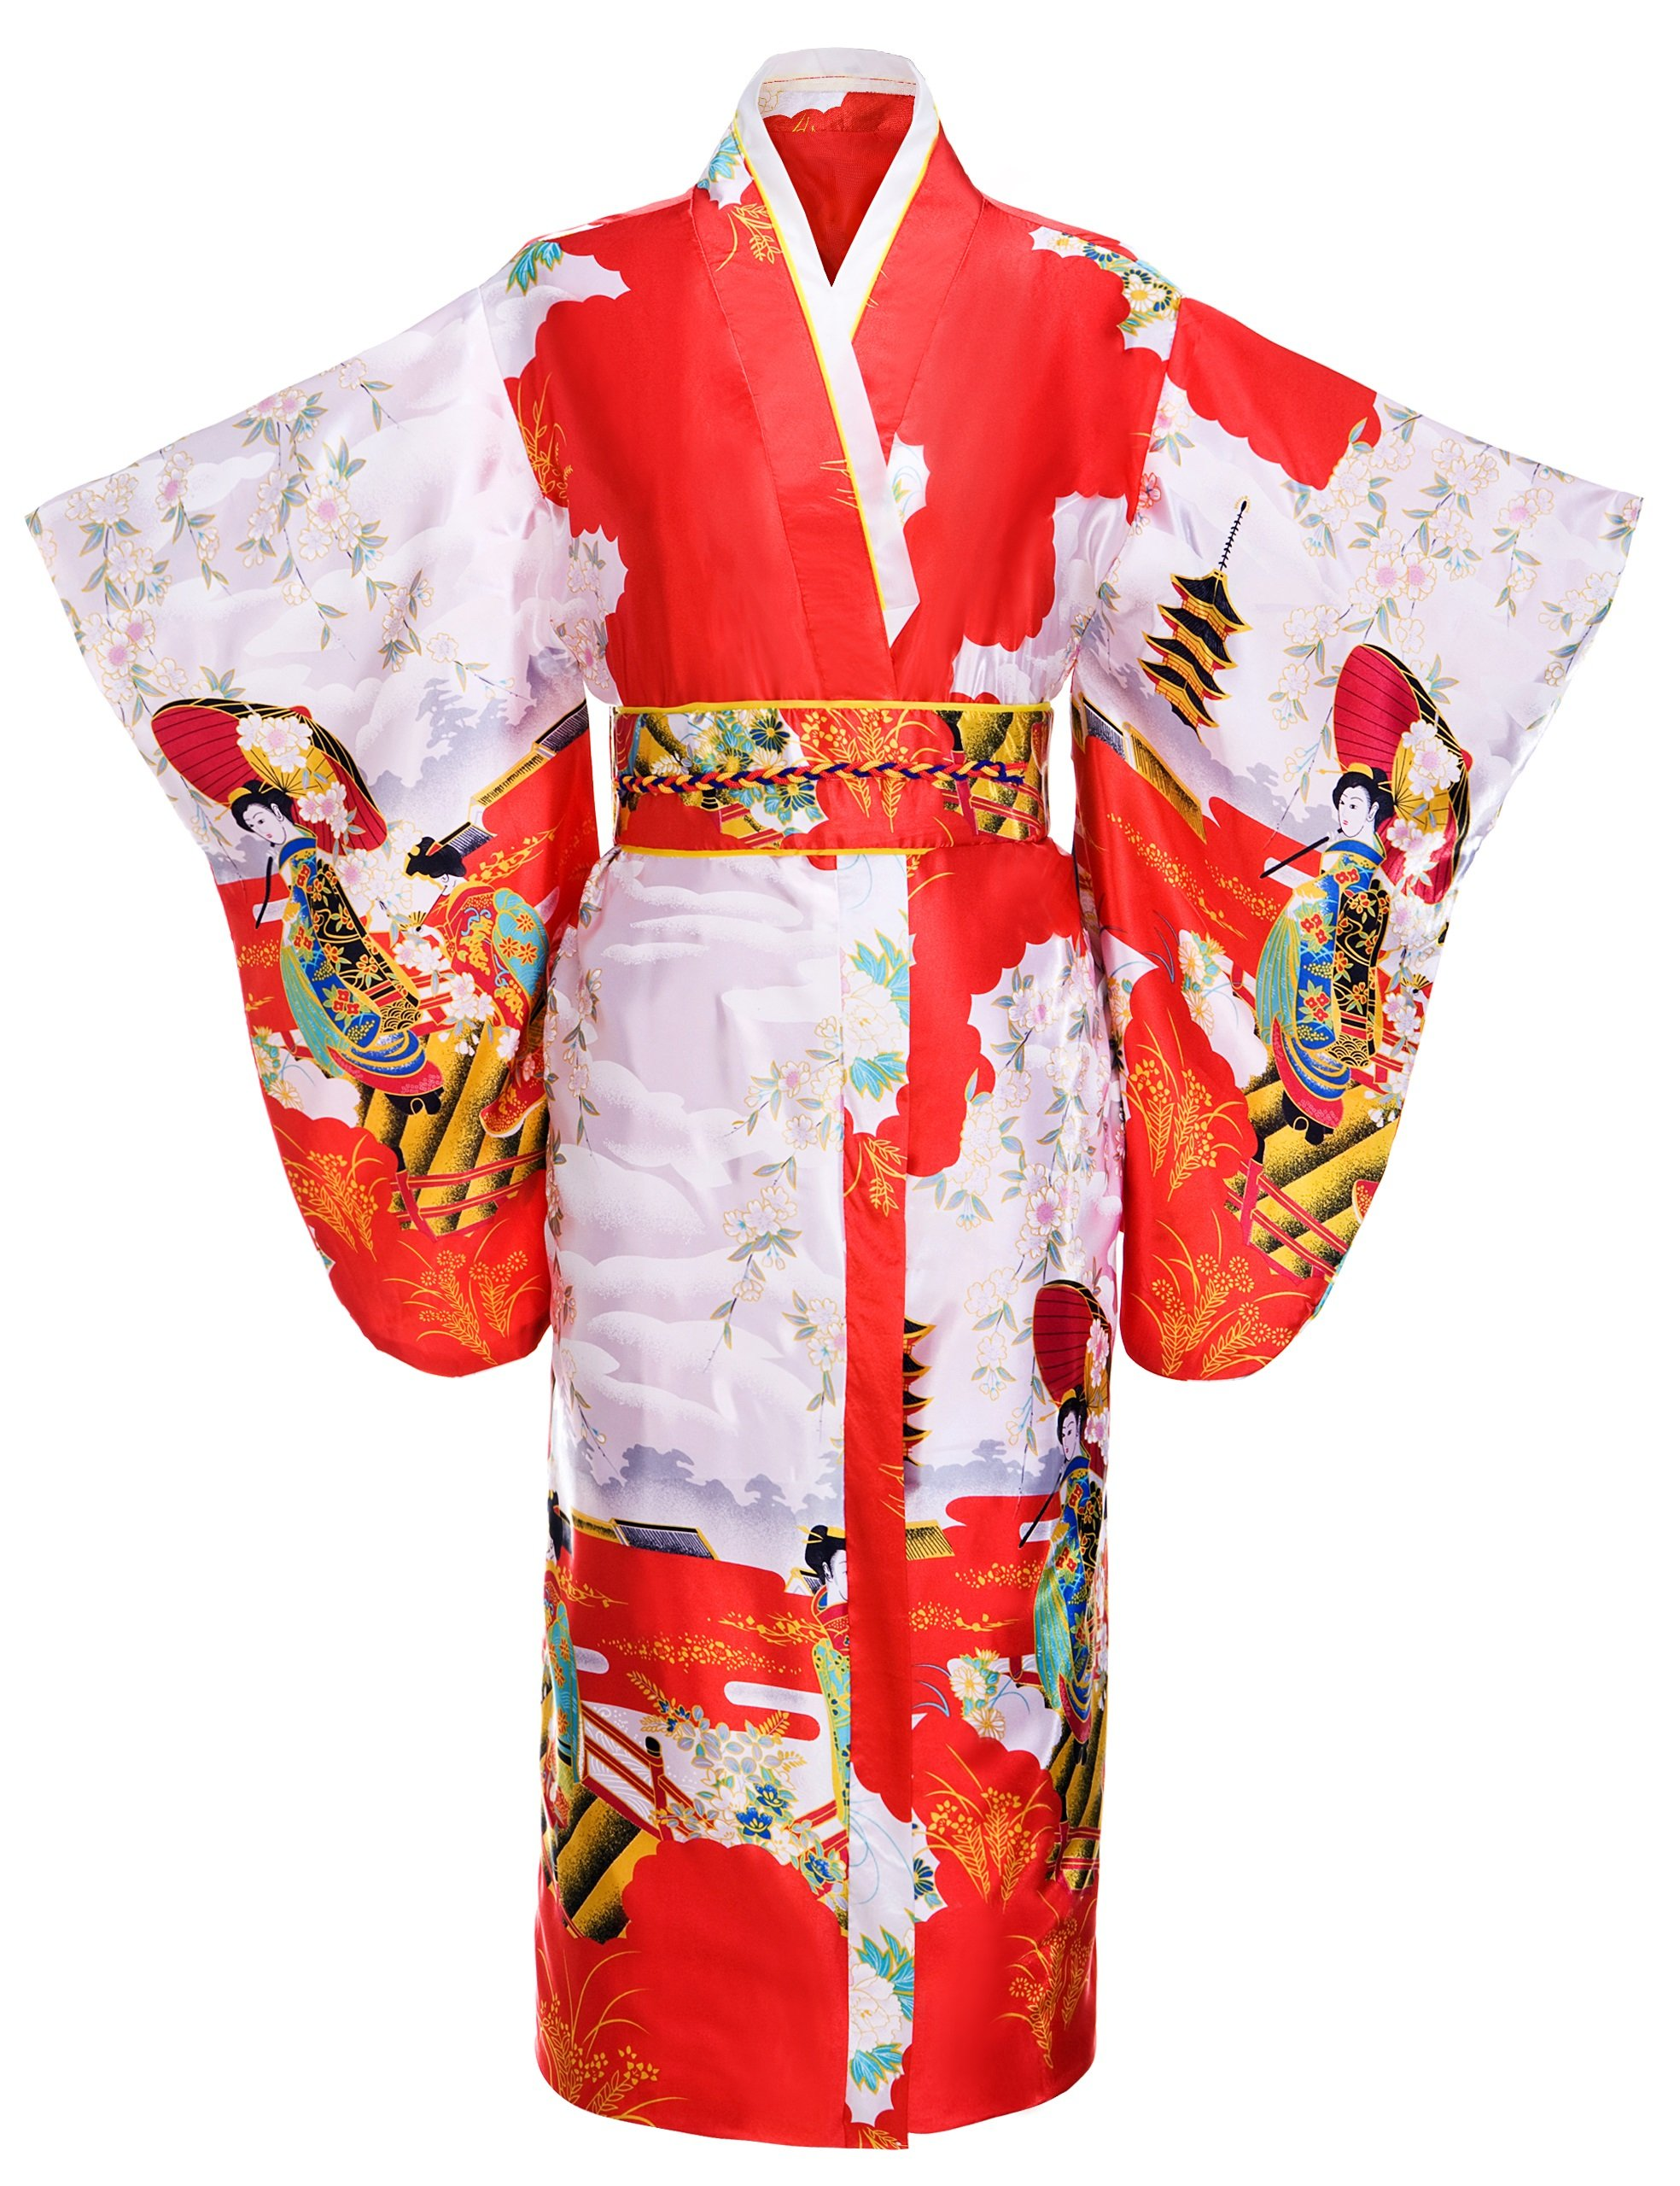 Kimono Palace Women's Japanese Traditional Pagoda Classy Silk Kimono Robe/Bathrobe/Party Robe Long With Bag